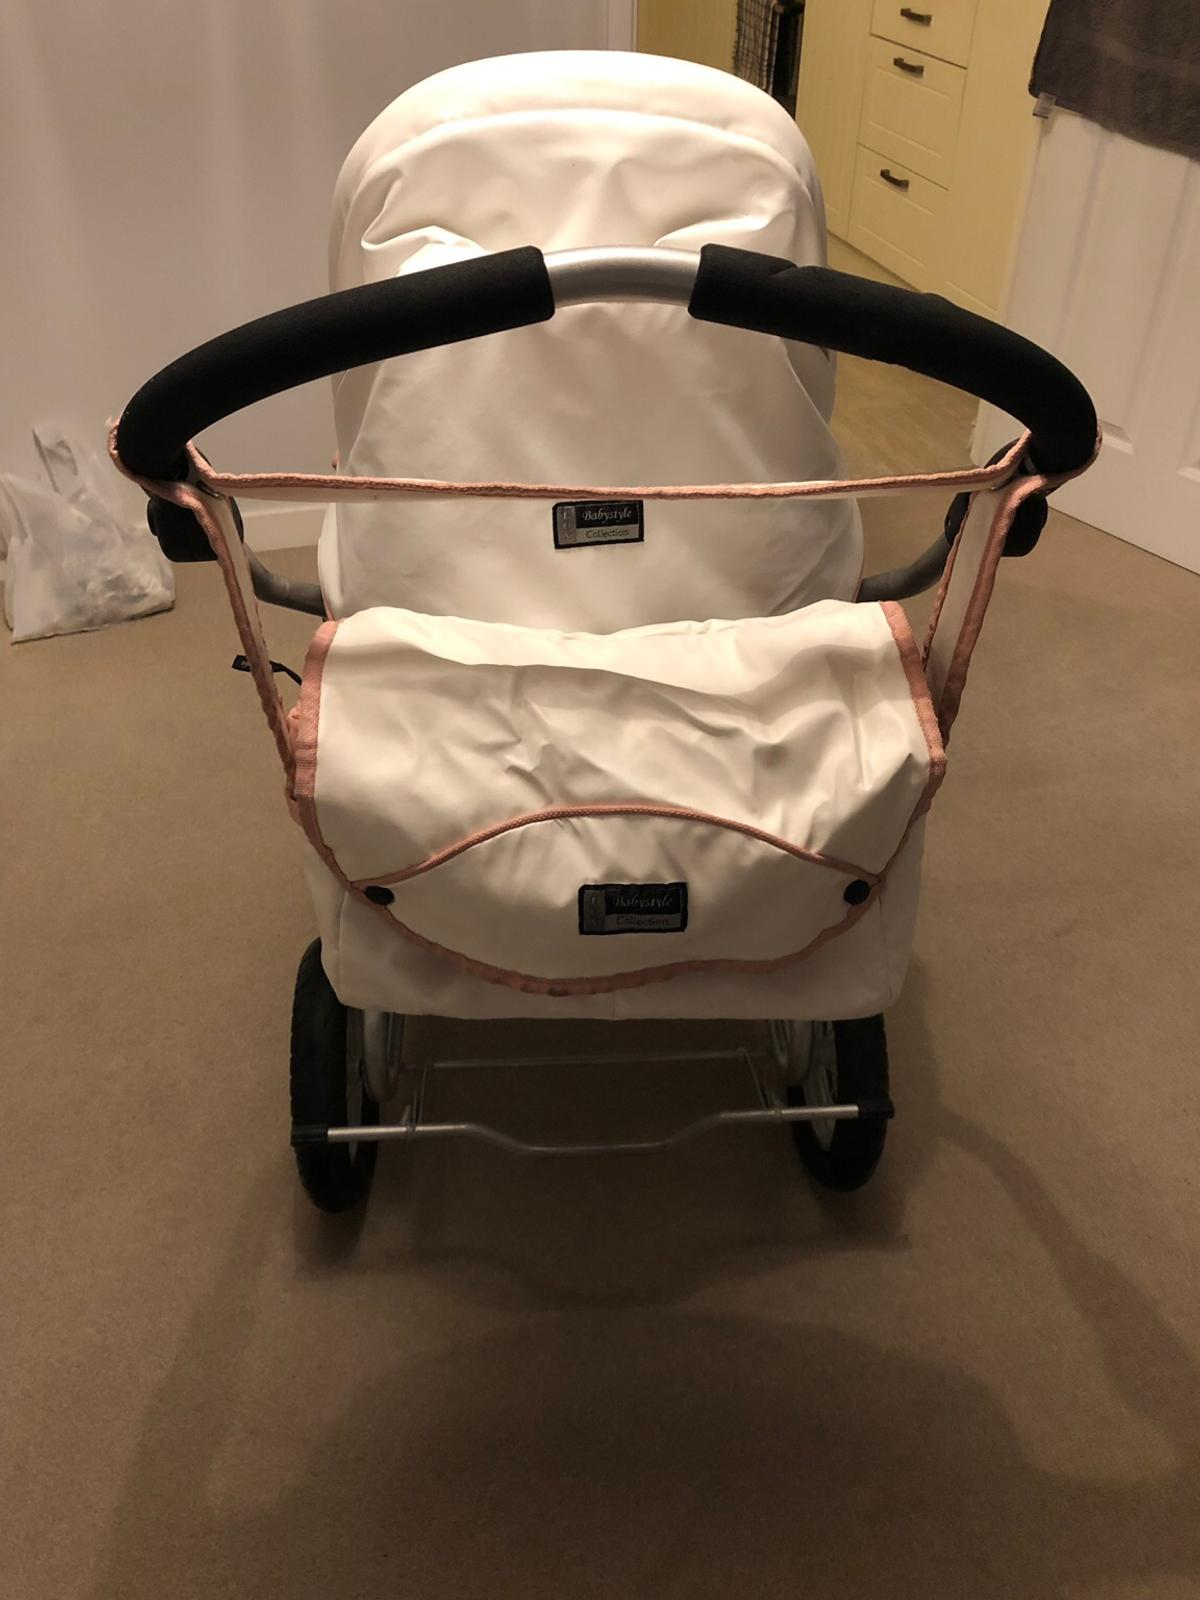 Here I am selling a stunning Babystyle Lux limited edition wicker 2 in 1 pram.  this pram is white leather affect with pink piping. The wicker basket sets this pram of as it not like your average style of pram.  Both parts of the pram are in great condition with general wear as shown in the photos.  This set up can be used from newborn to 2 years of age.  Including winter cover, summer net & changing bag.  Collection thurnscoe